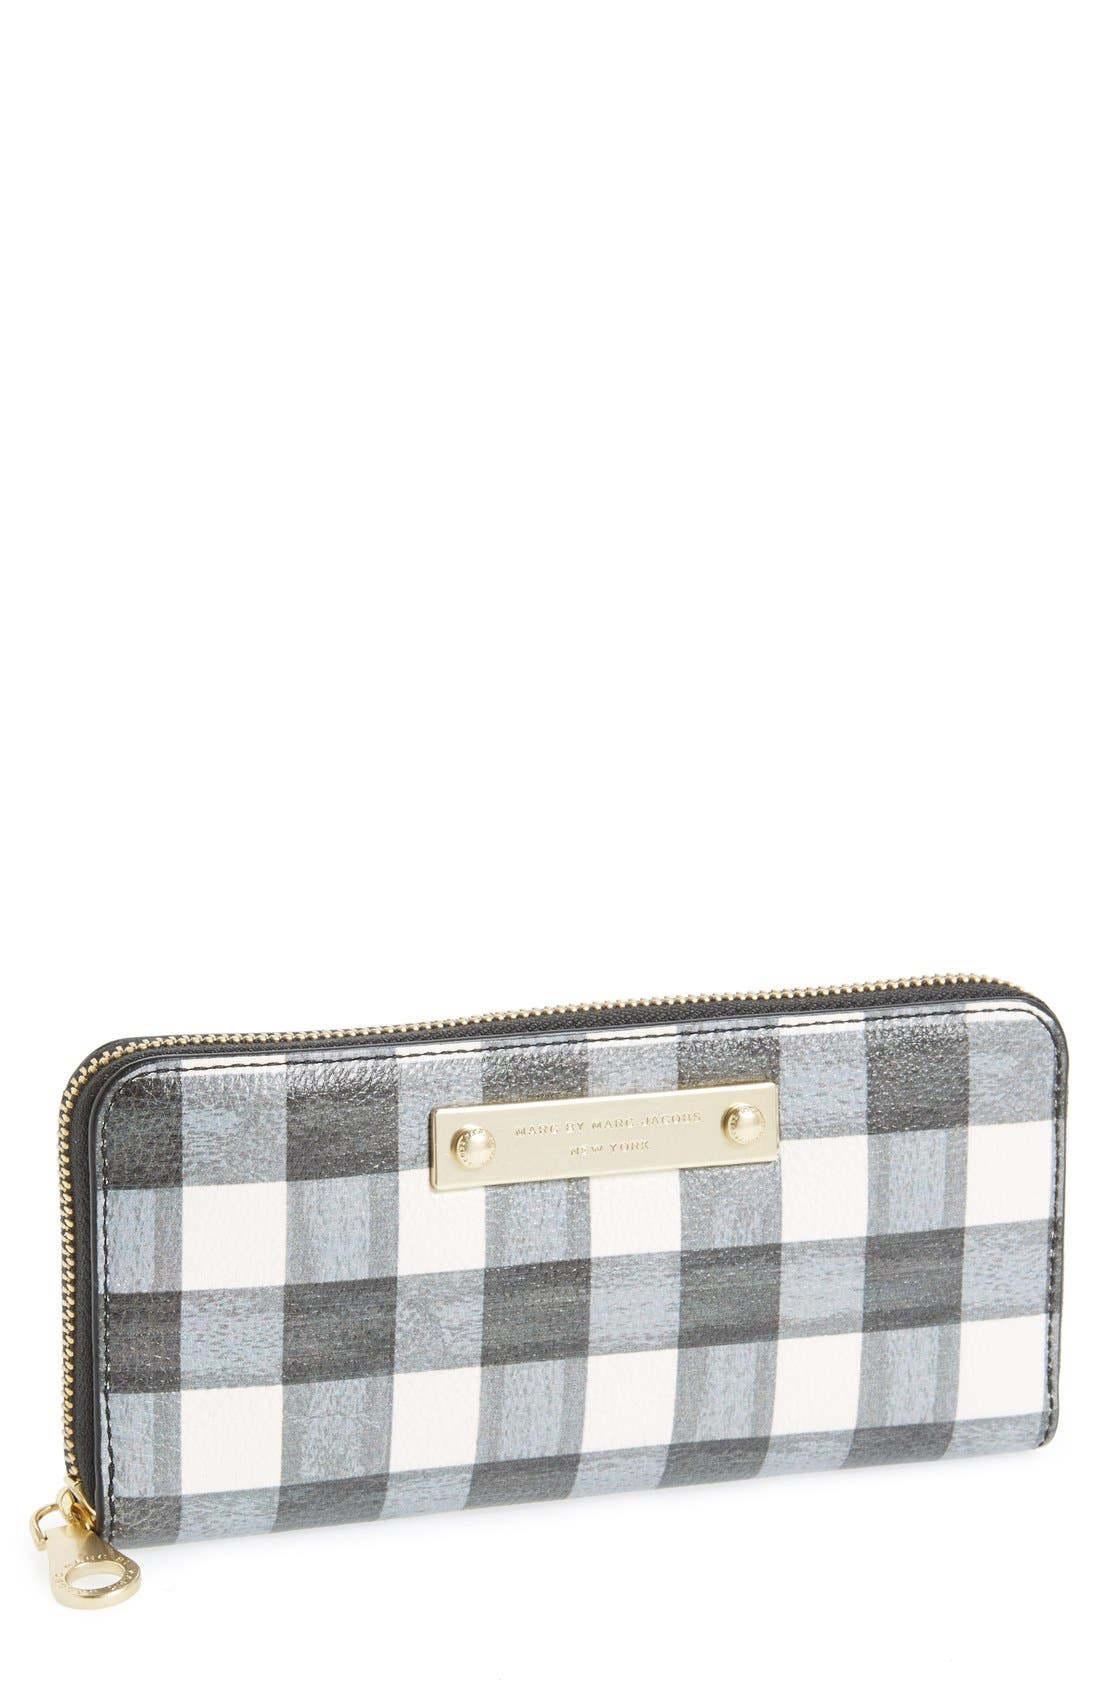 Main Image - MARC BY MARC JACOBS 'Slim' Print Leather Zip Around Wallet